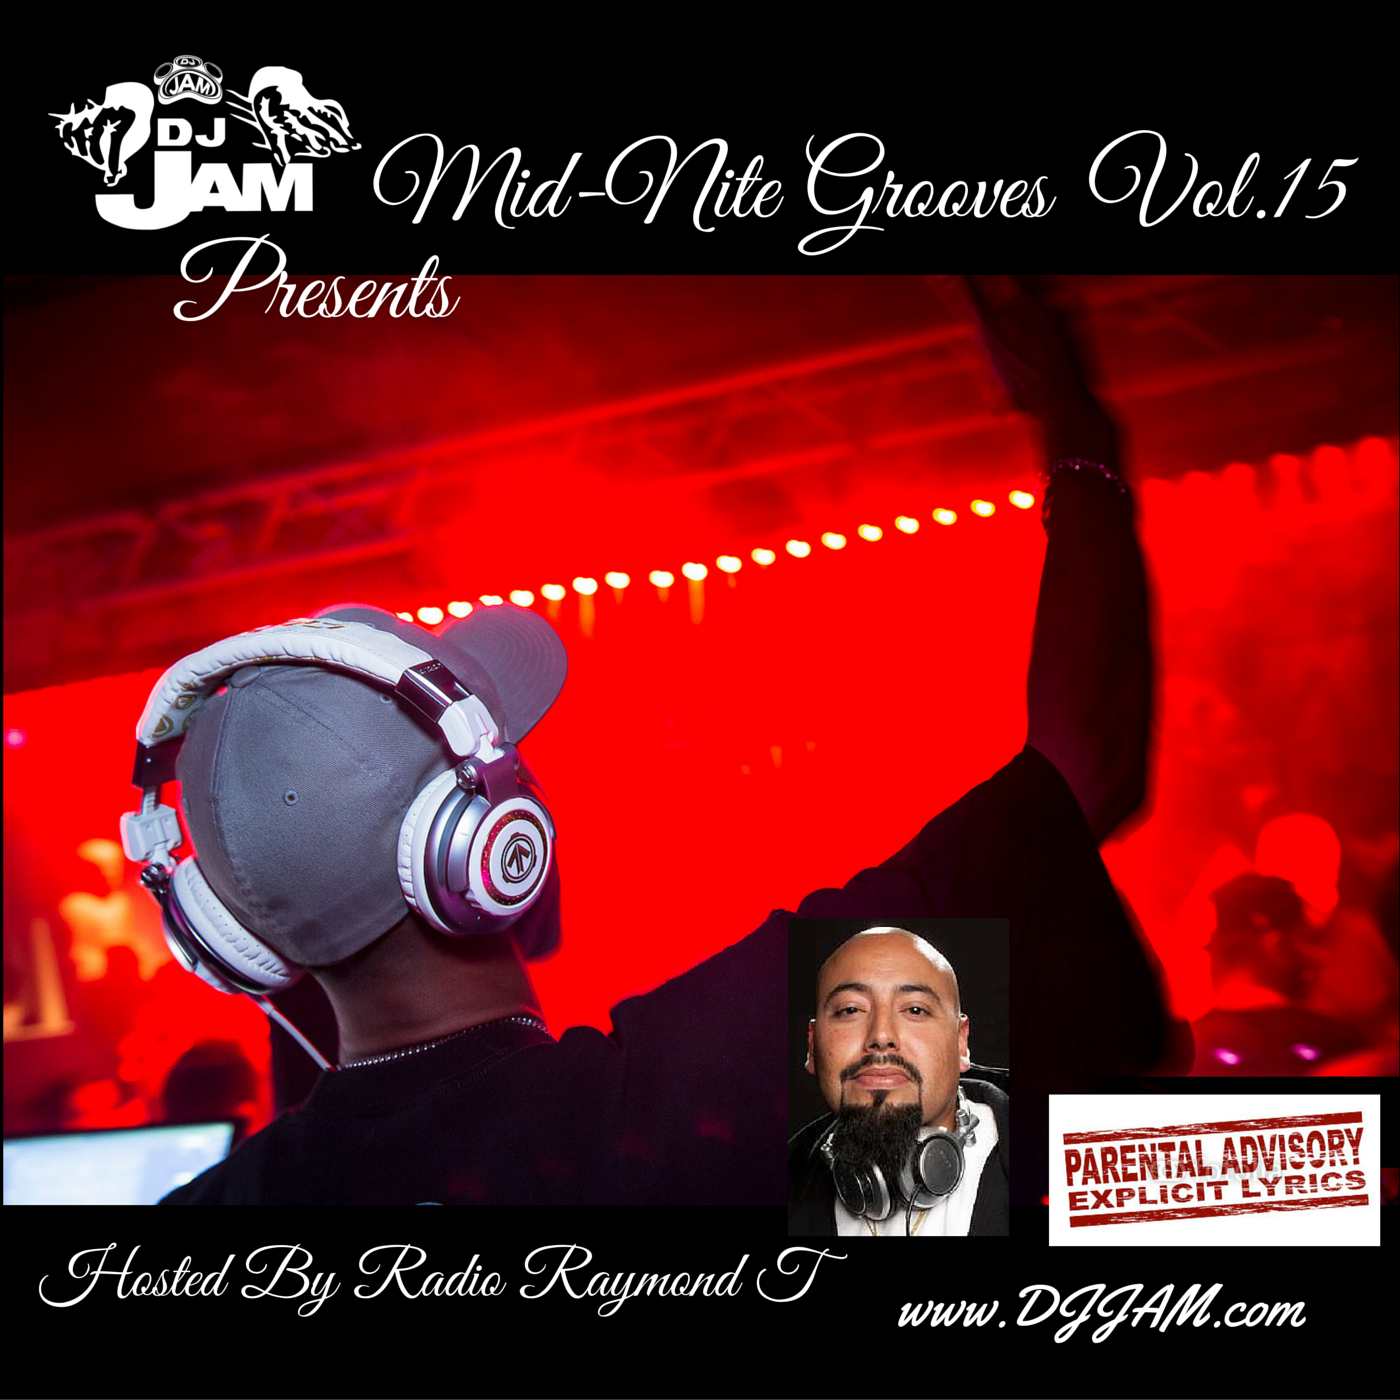 """""""NEW MUSIC for the Holidays!!!"""" DJ Jam Presents Mid-Nite Grooves Vol.15 Hosted by Radio Raymond T"""